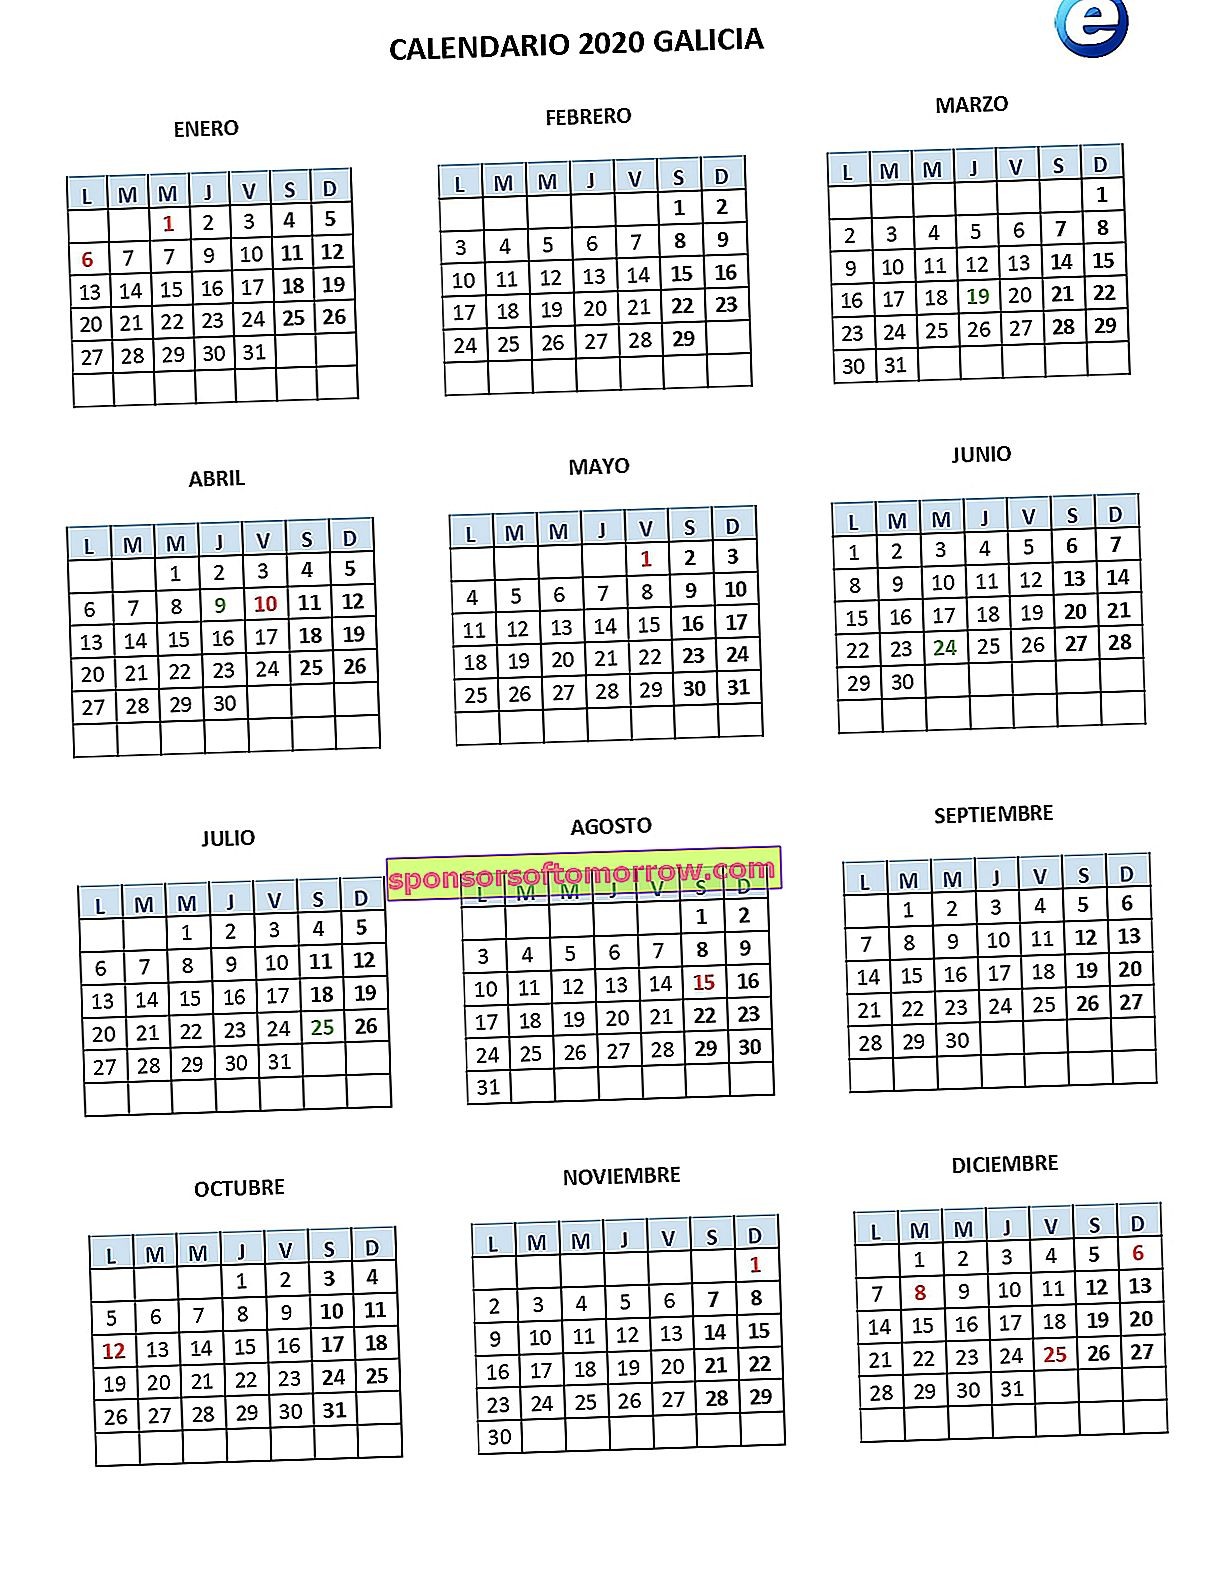 2020 work calendar, printable calendars with official holidays by community 2